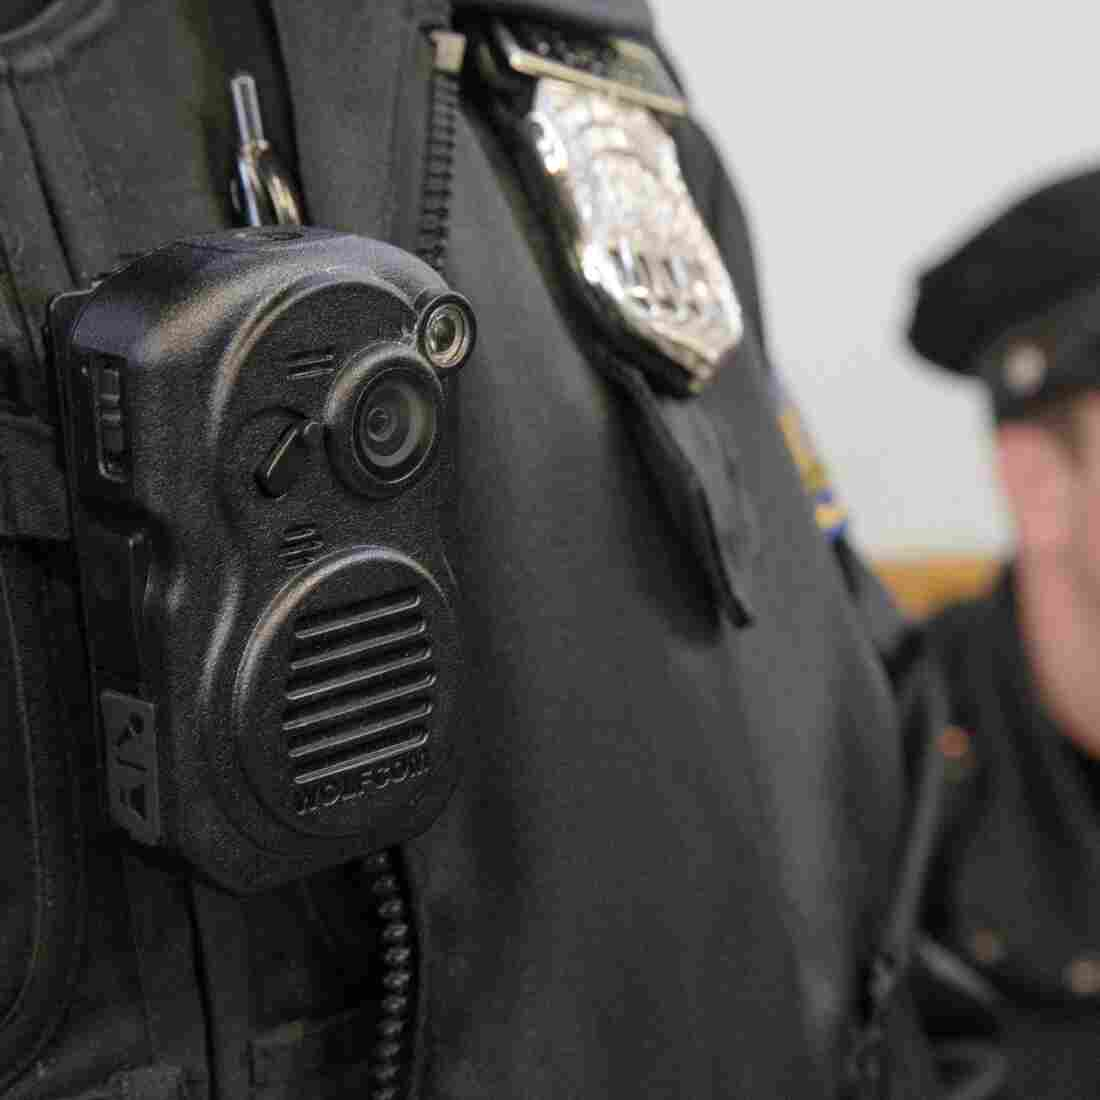 A Philadelphia police officer demonstrates a body-worn camera being used as part of a pilot project last December.